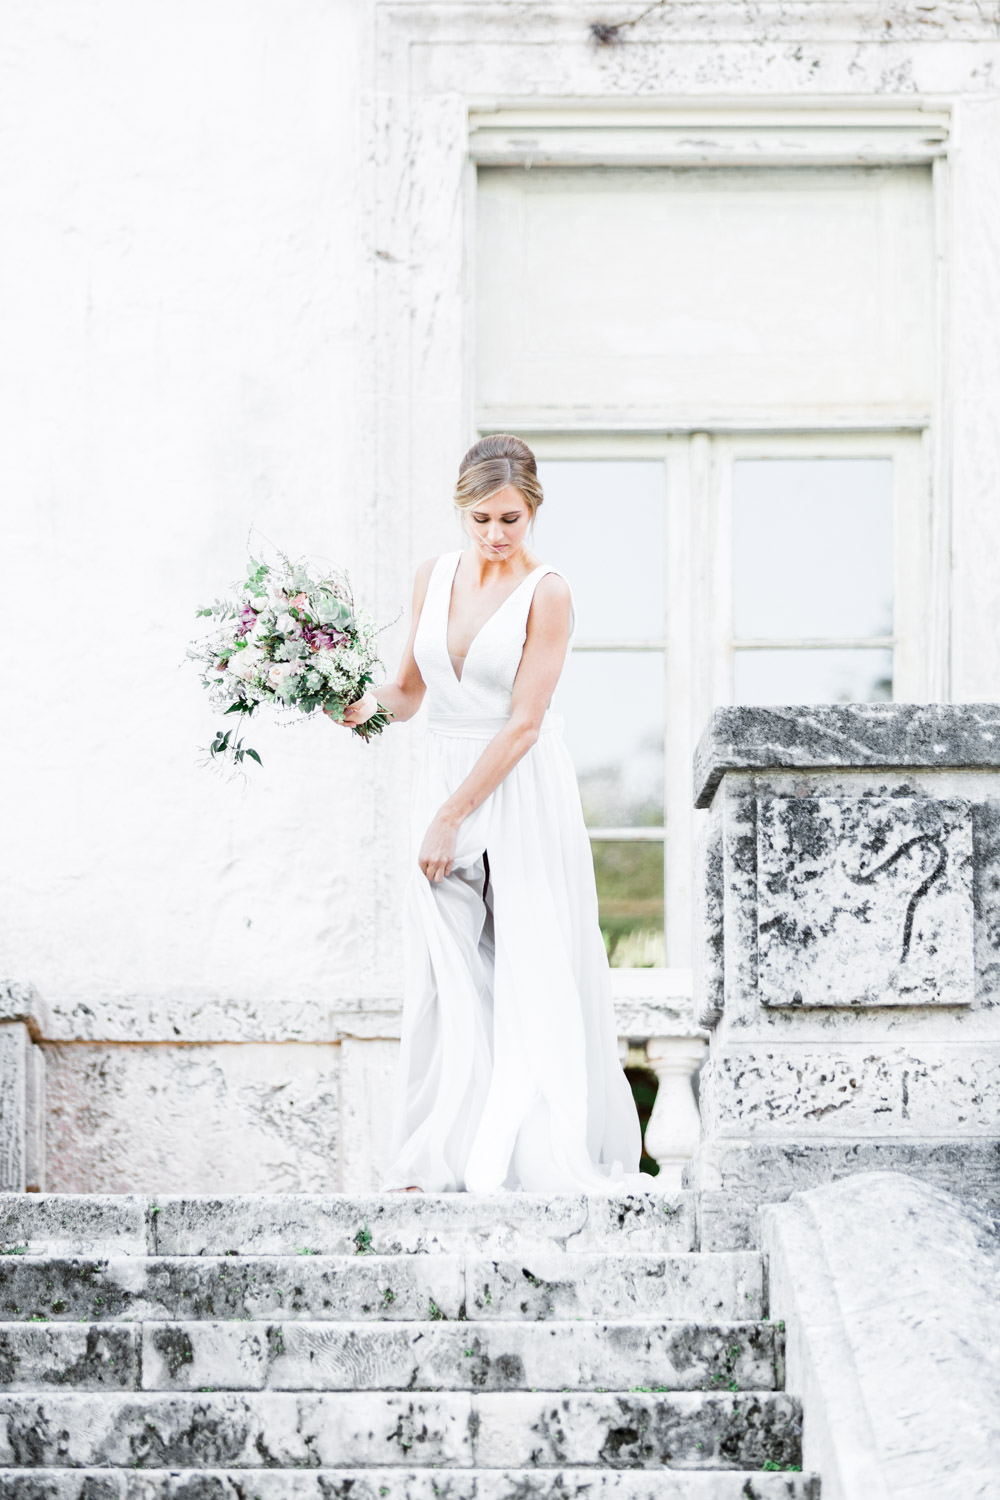 Fine art Miami Vizcaya Wedding Photography, Cavin Elizabeth Photography, bridal portrait with bouquet coming down the stairs